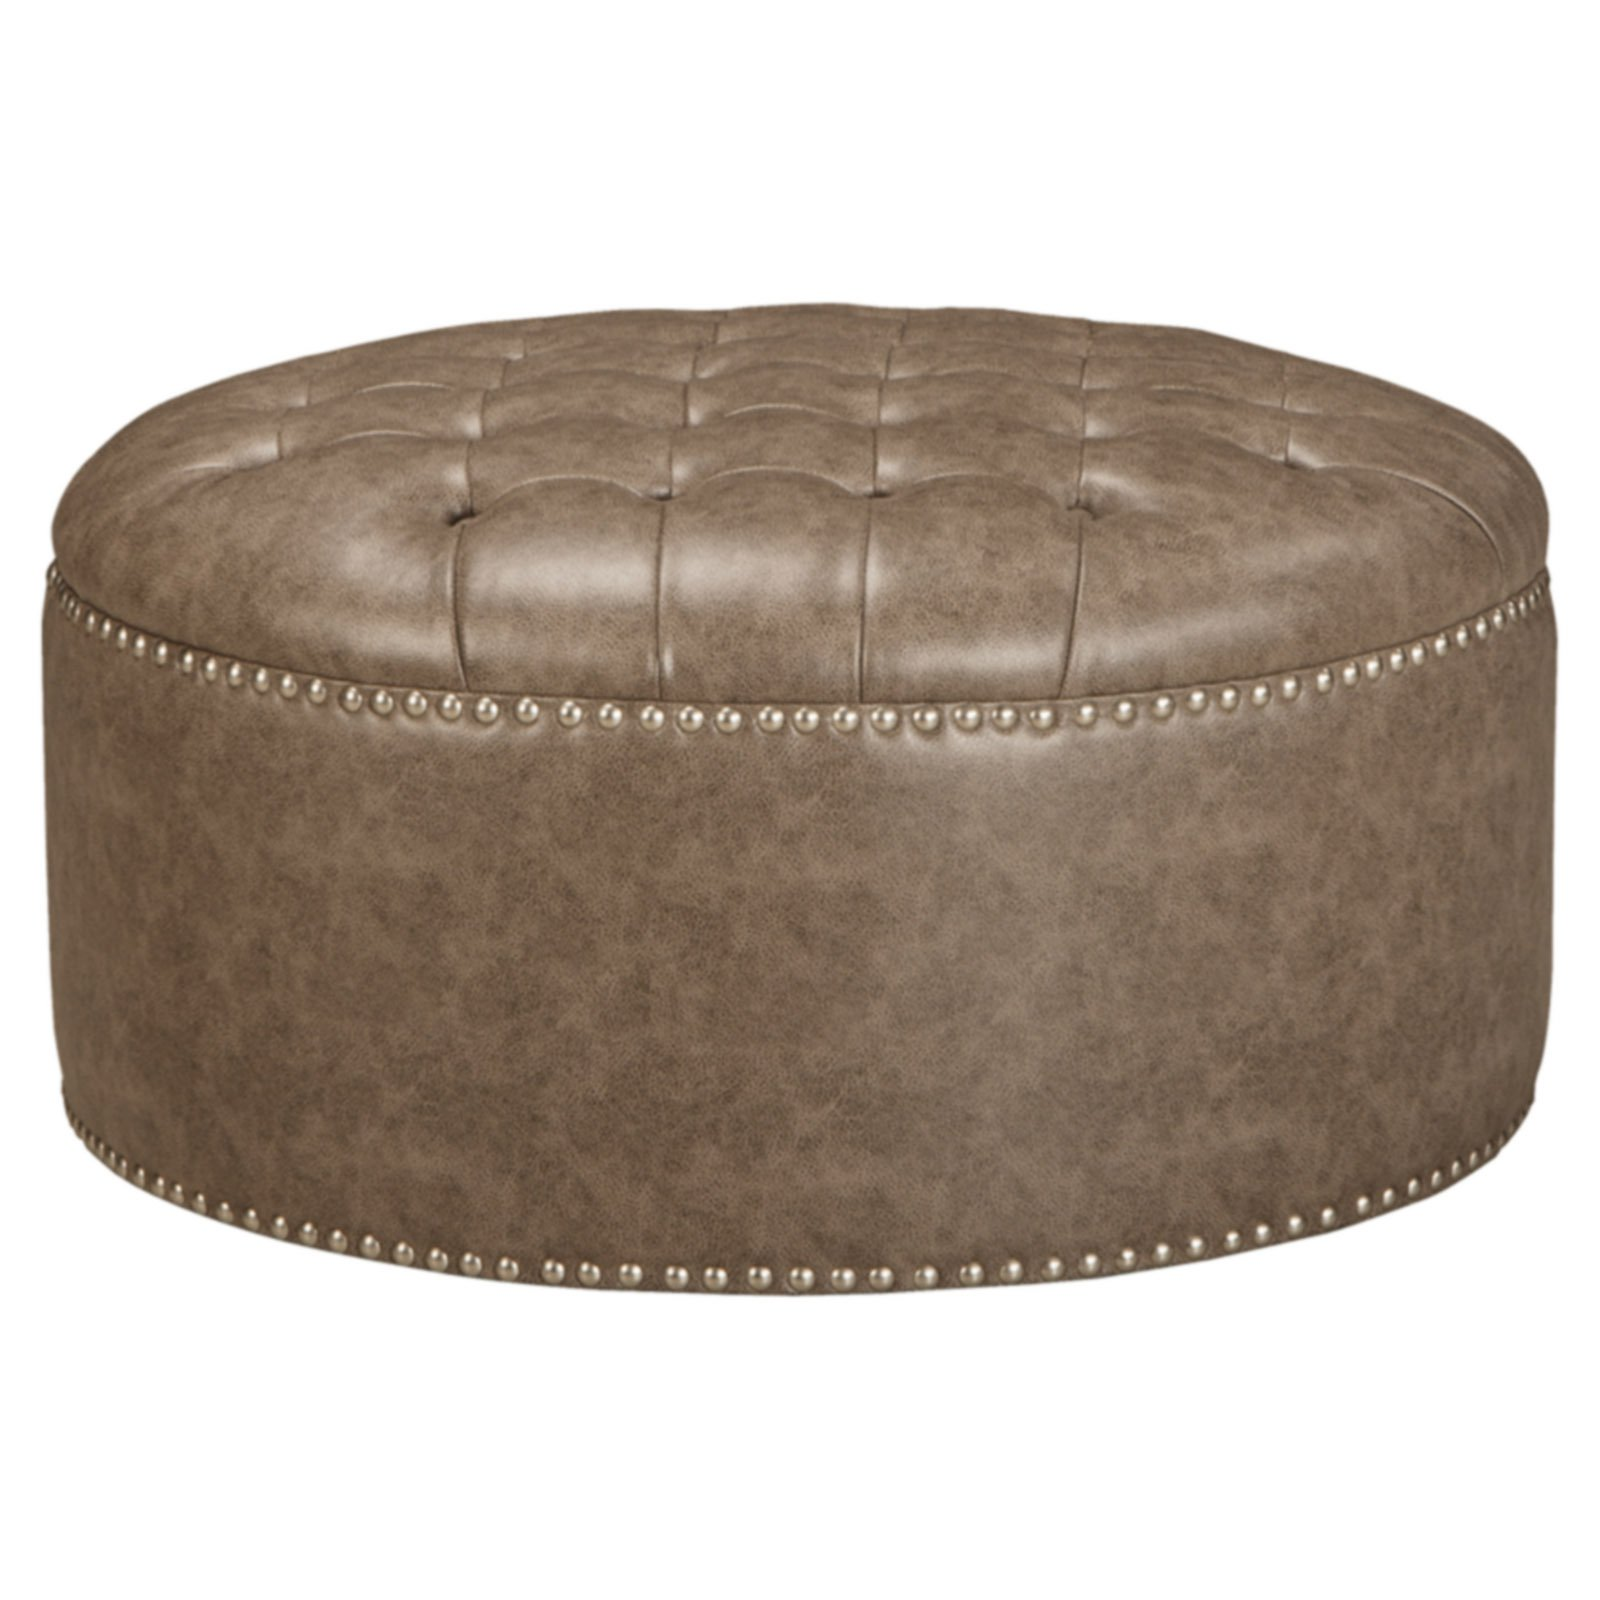 Signature Design by Ashley Wilcot Oversized Coffee Table Ottoman